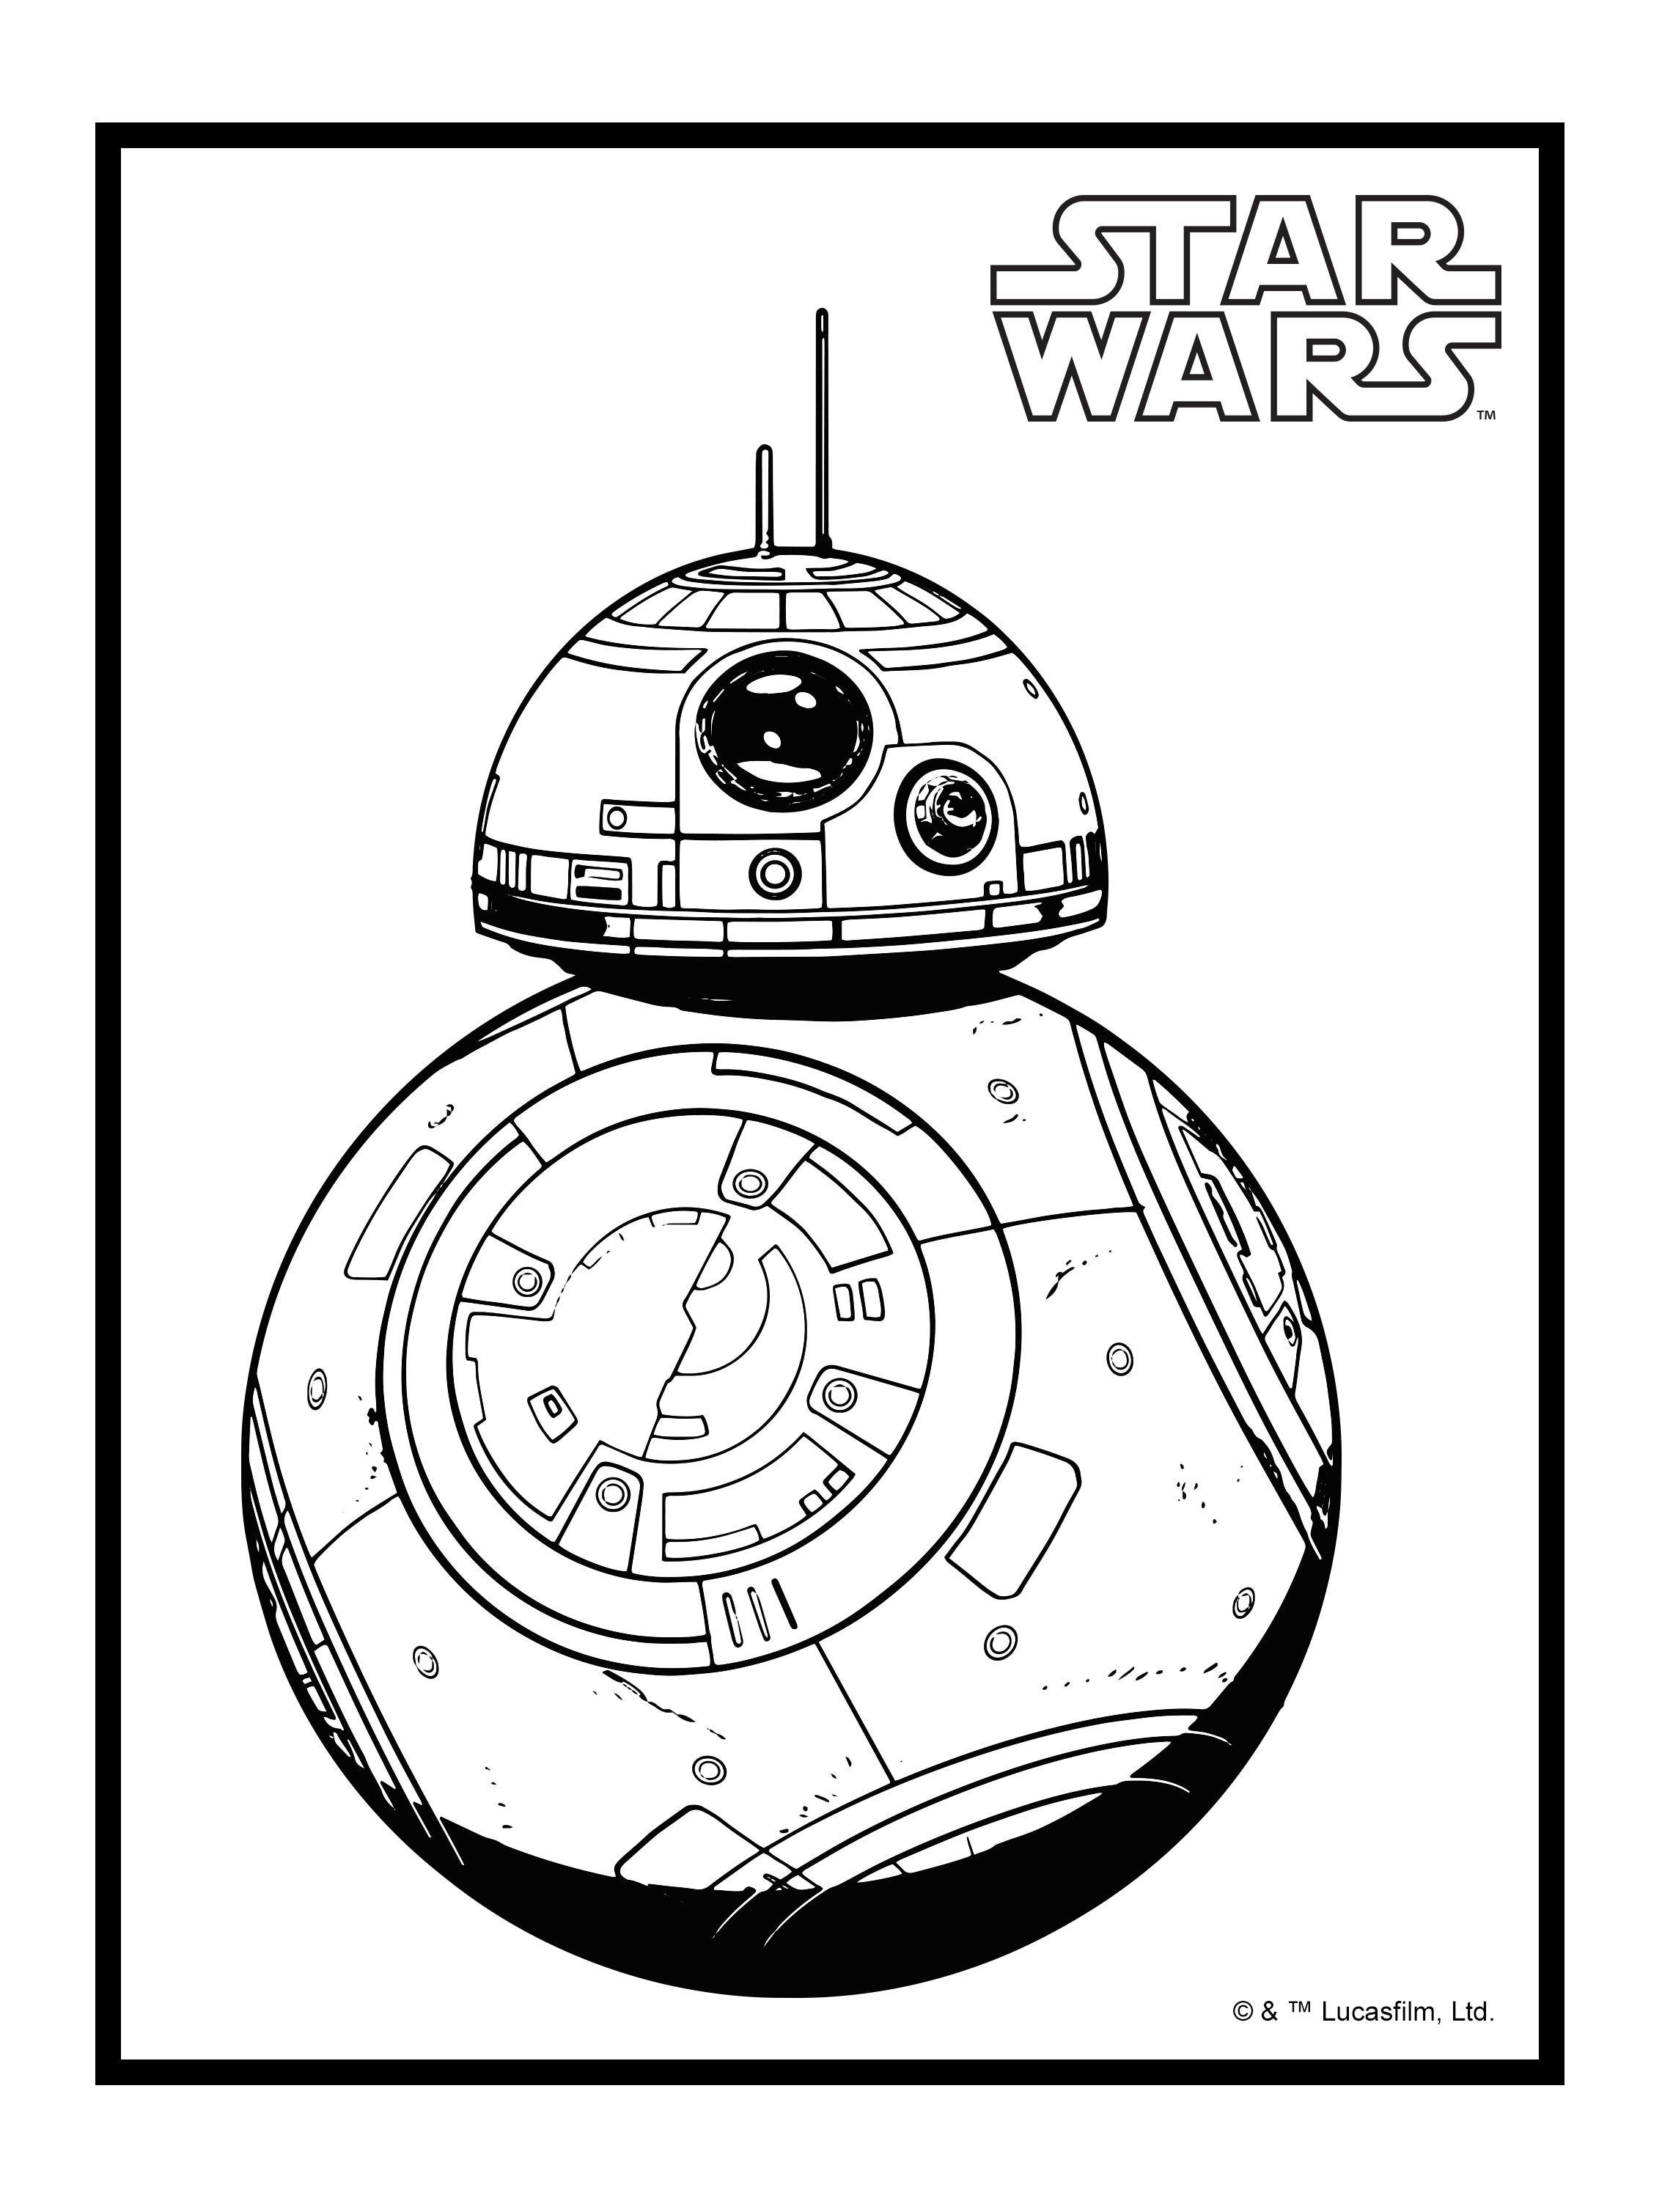 Star Wars Coloring Pages Bb8 At Getdrawings Com Free For Personal